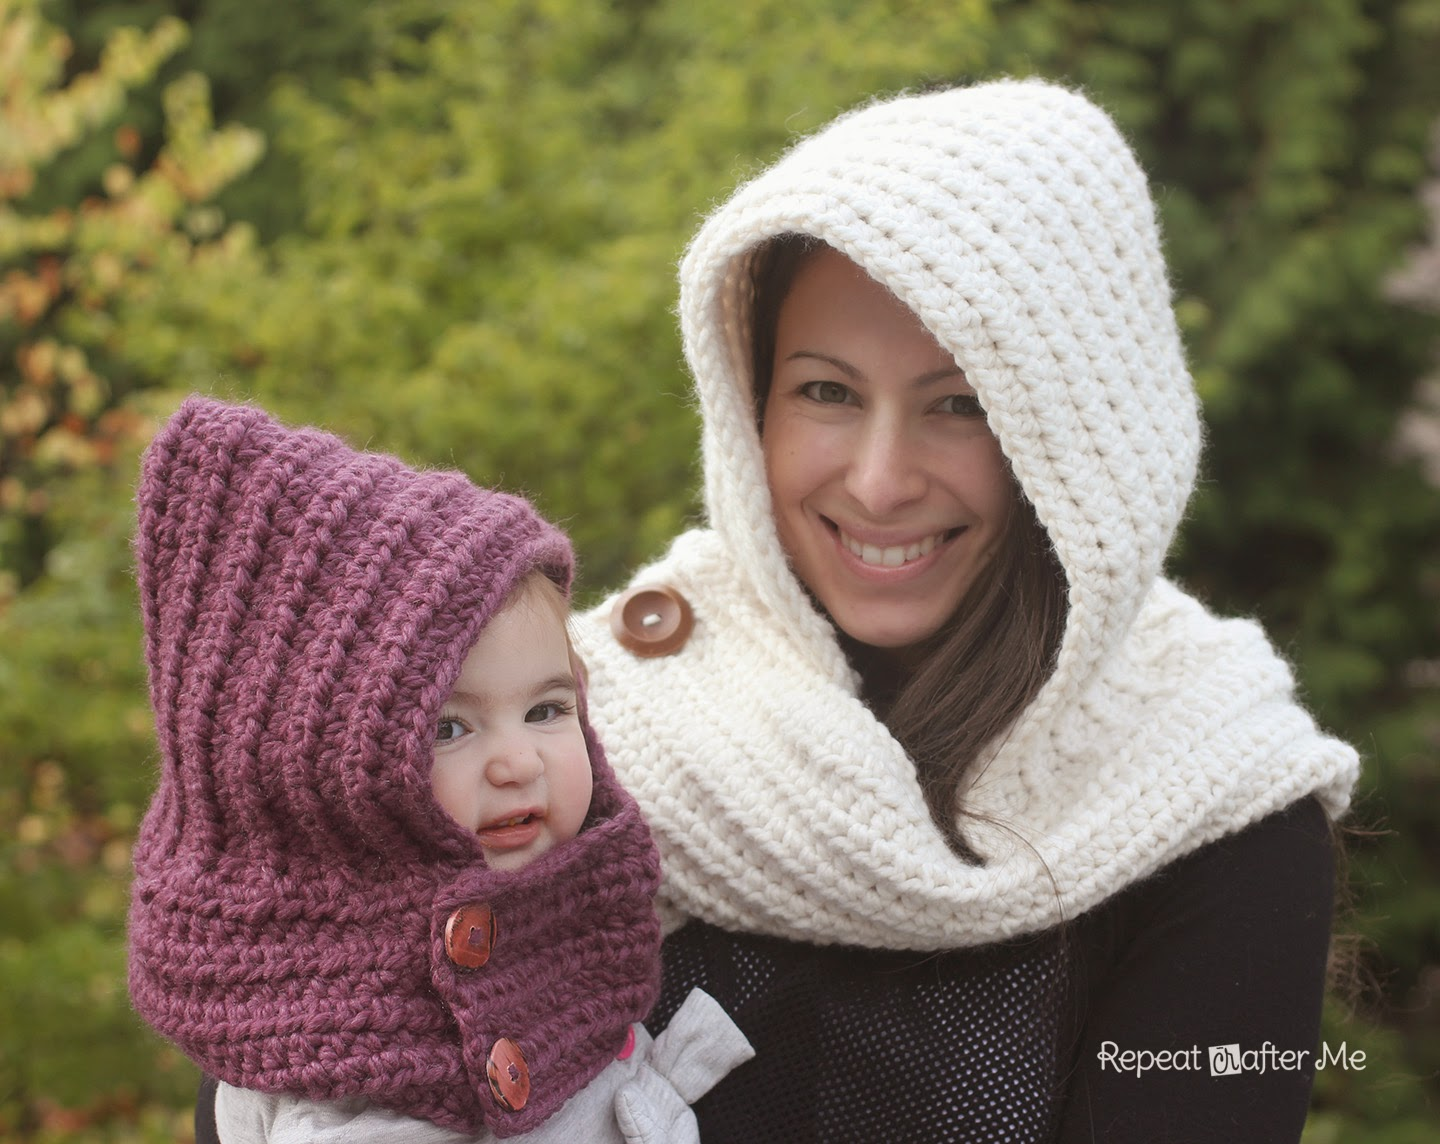 Crochet Patterns Using Scarfie Yarn : Hooded Crochet Cowl with Lion Brand Thick & Quick Yarn #Scarfie ...